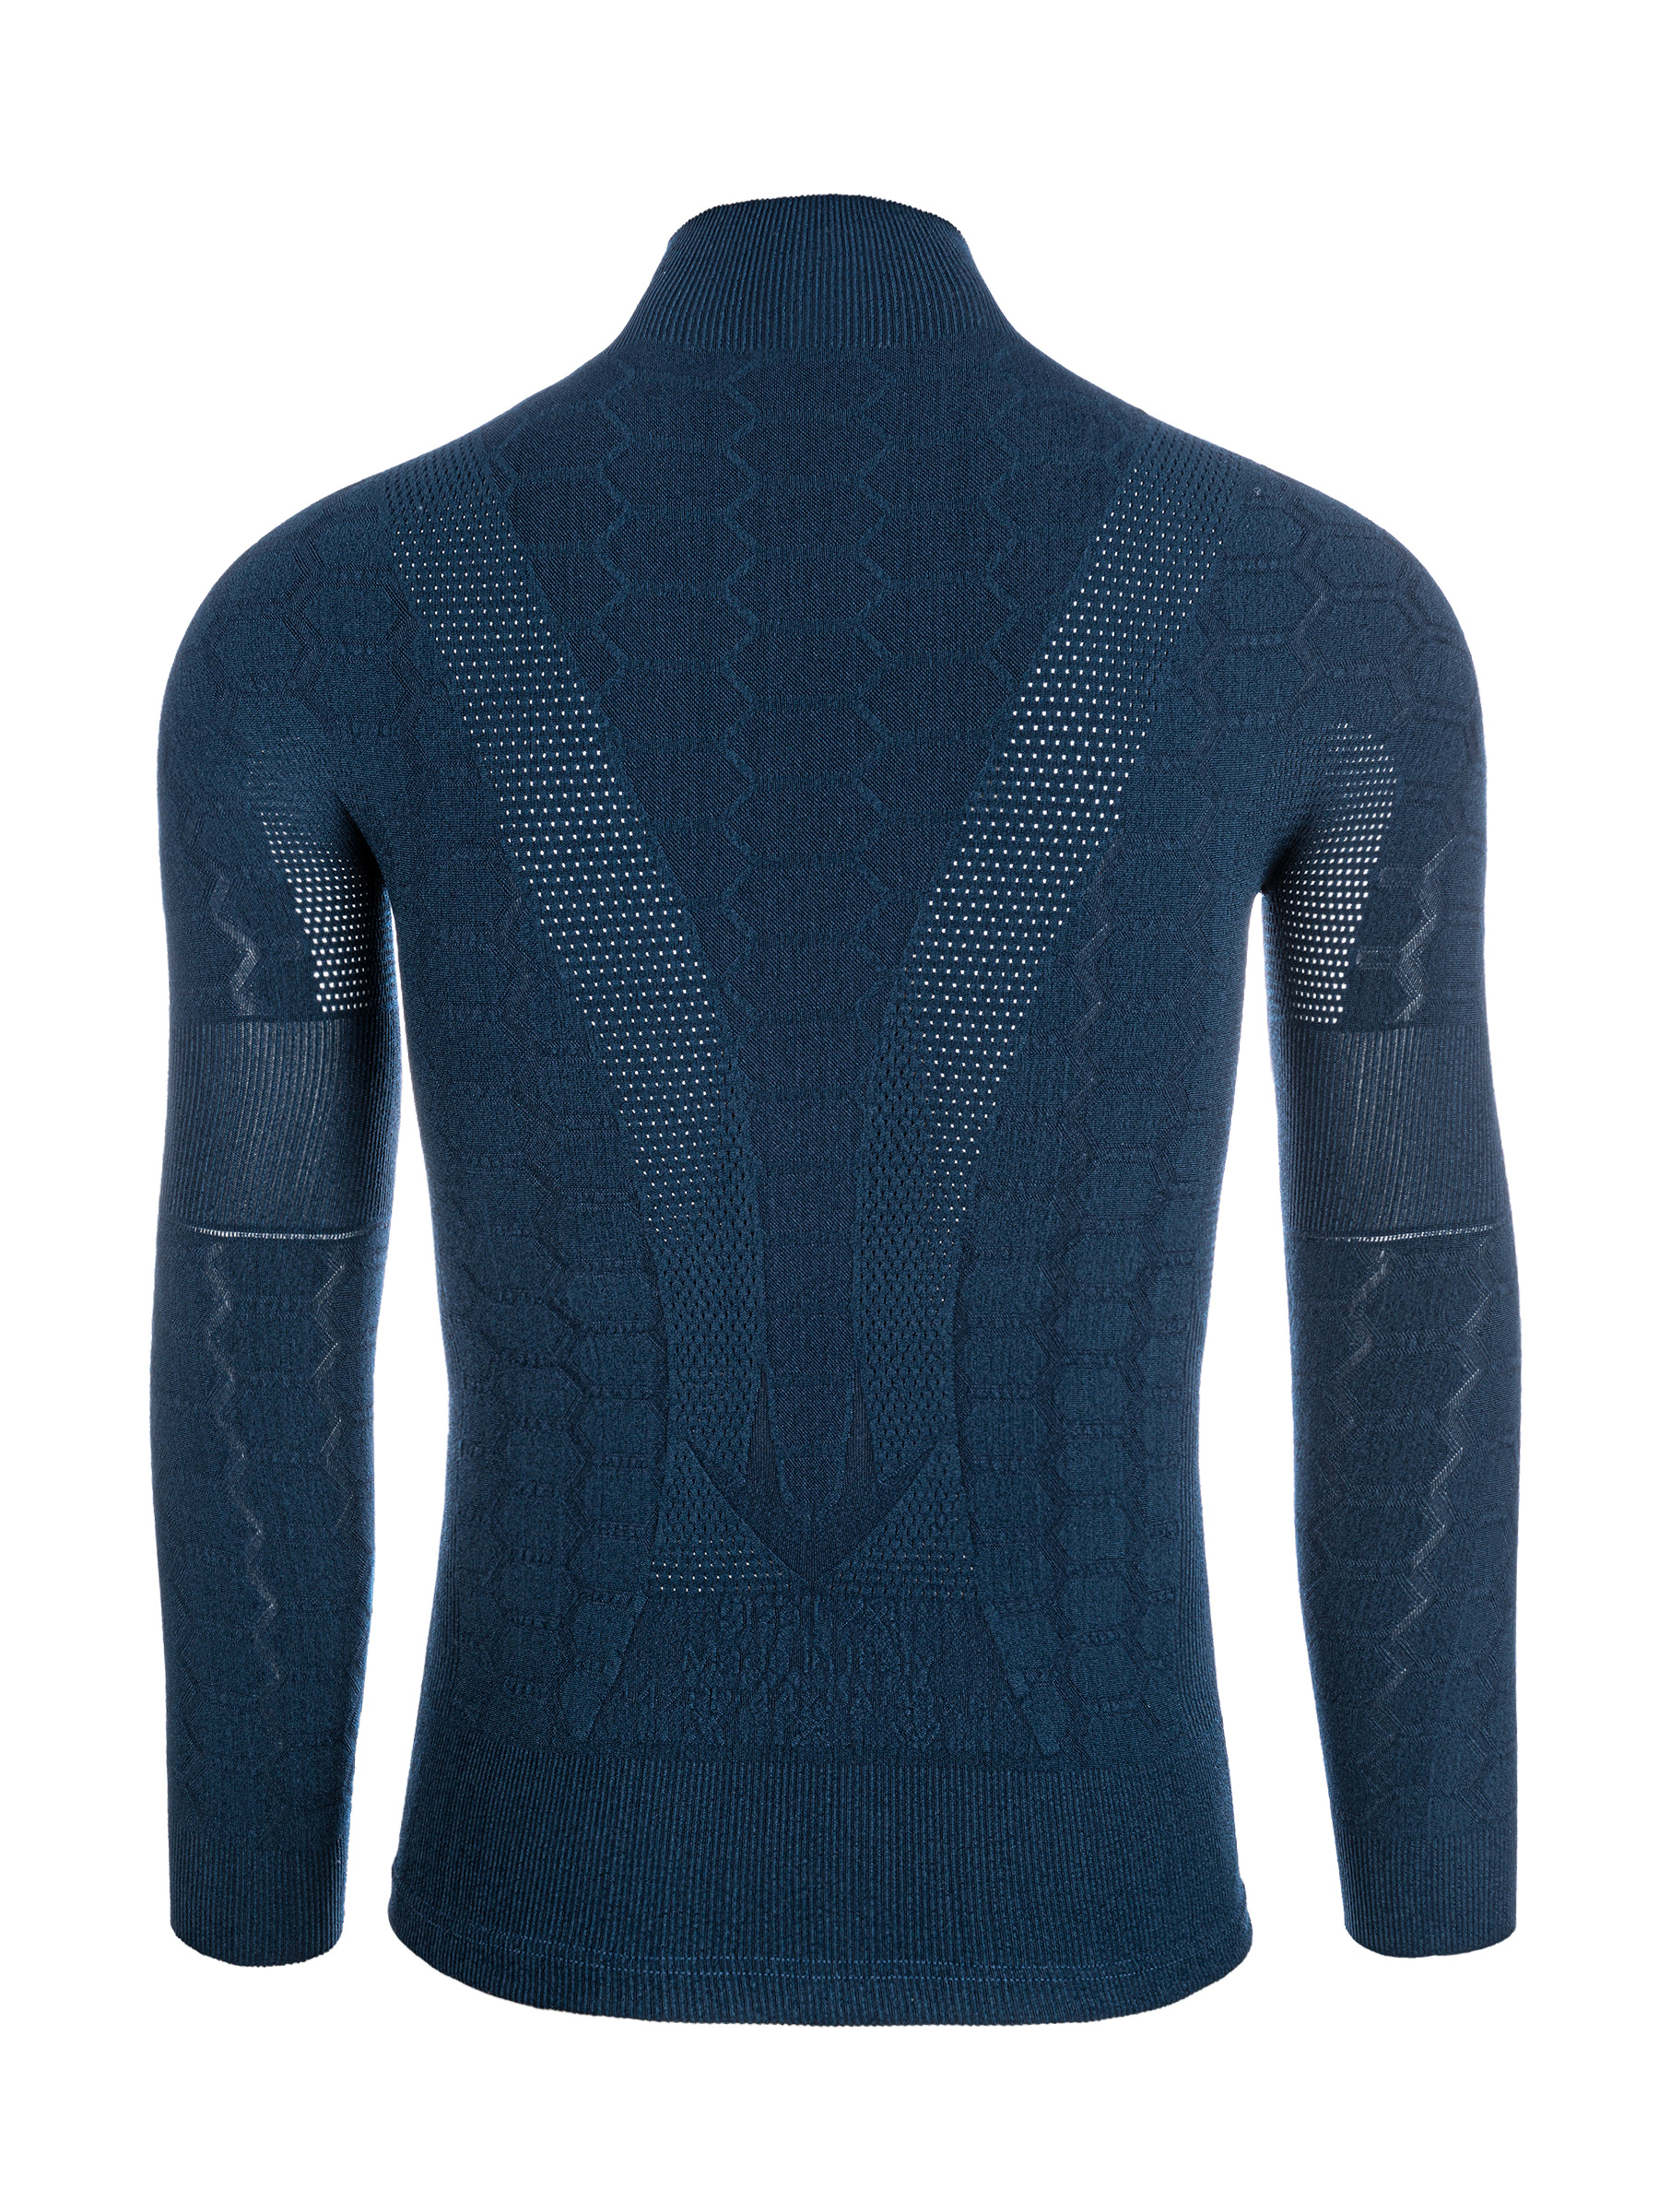 Base Layer 4 Plus langarm in Navy-Blau